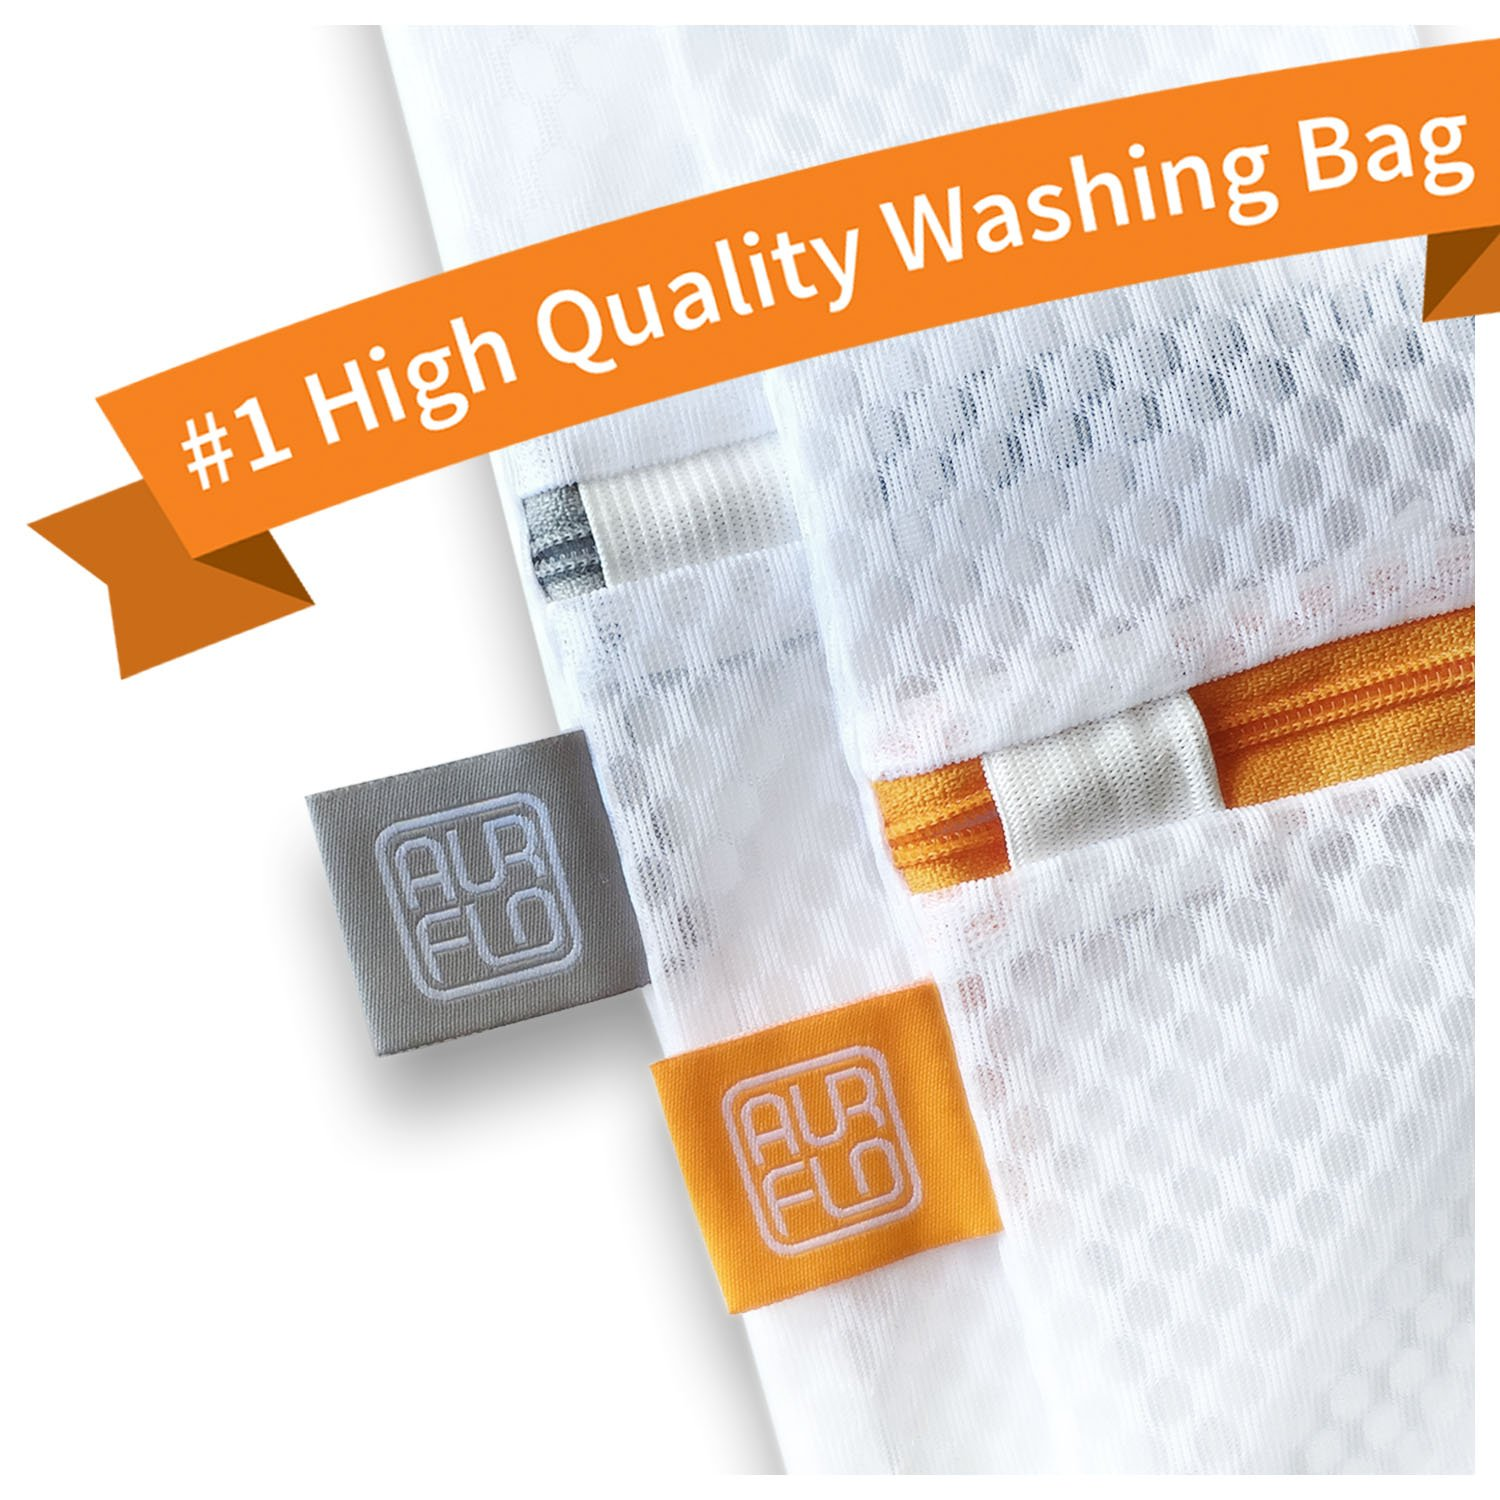 AURFLO Mesh Laundry Bag-Set of 2 Extra Large Heavy Duty Net with Zipper Lock, Color Coding and Hanging Loop-Safe Wash and Organizer for Travel, Lingerie, Gloves, Socks, Yoga Pants, Bra, Jeans, Sweater